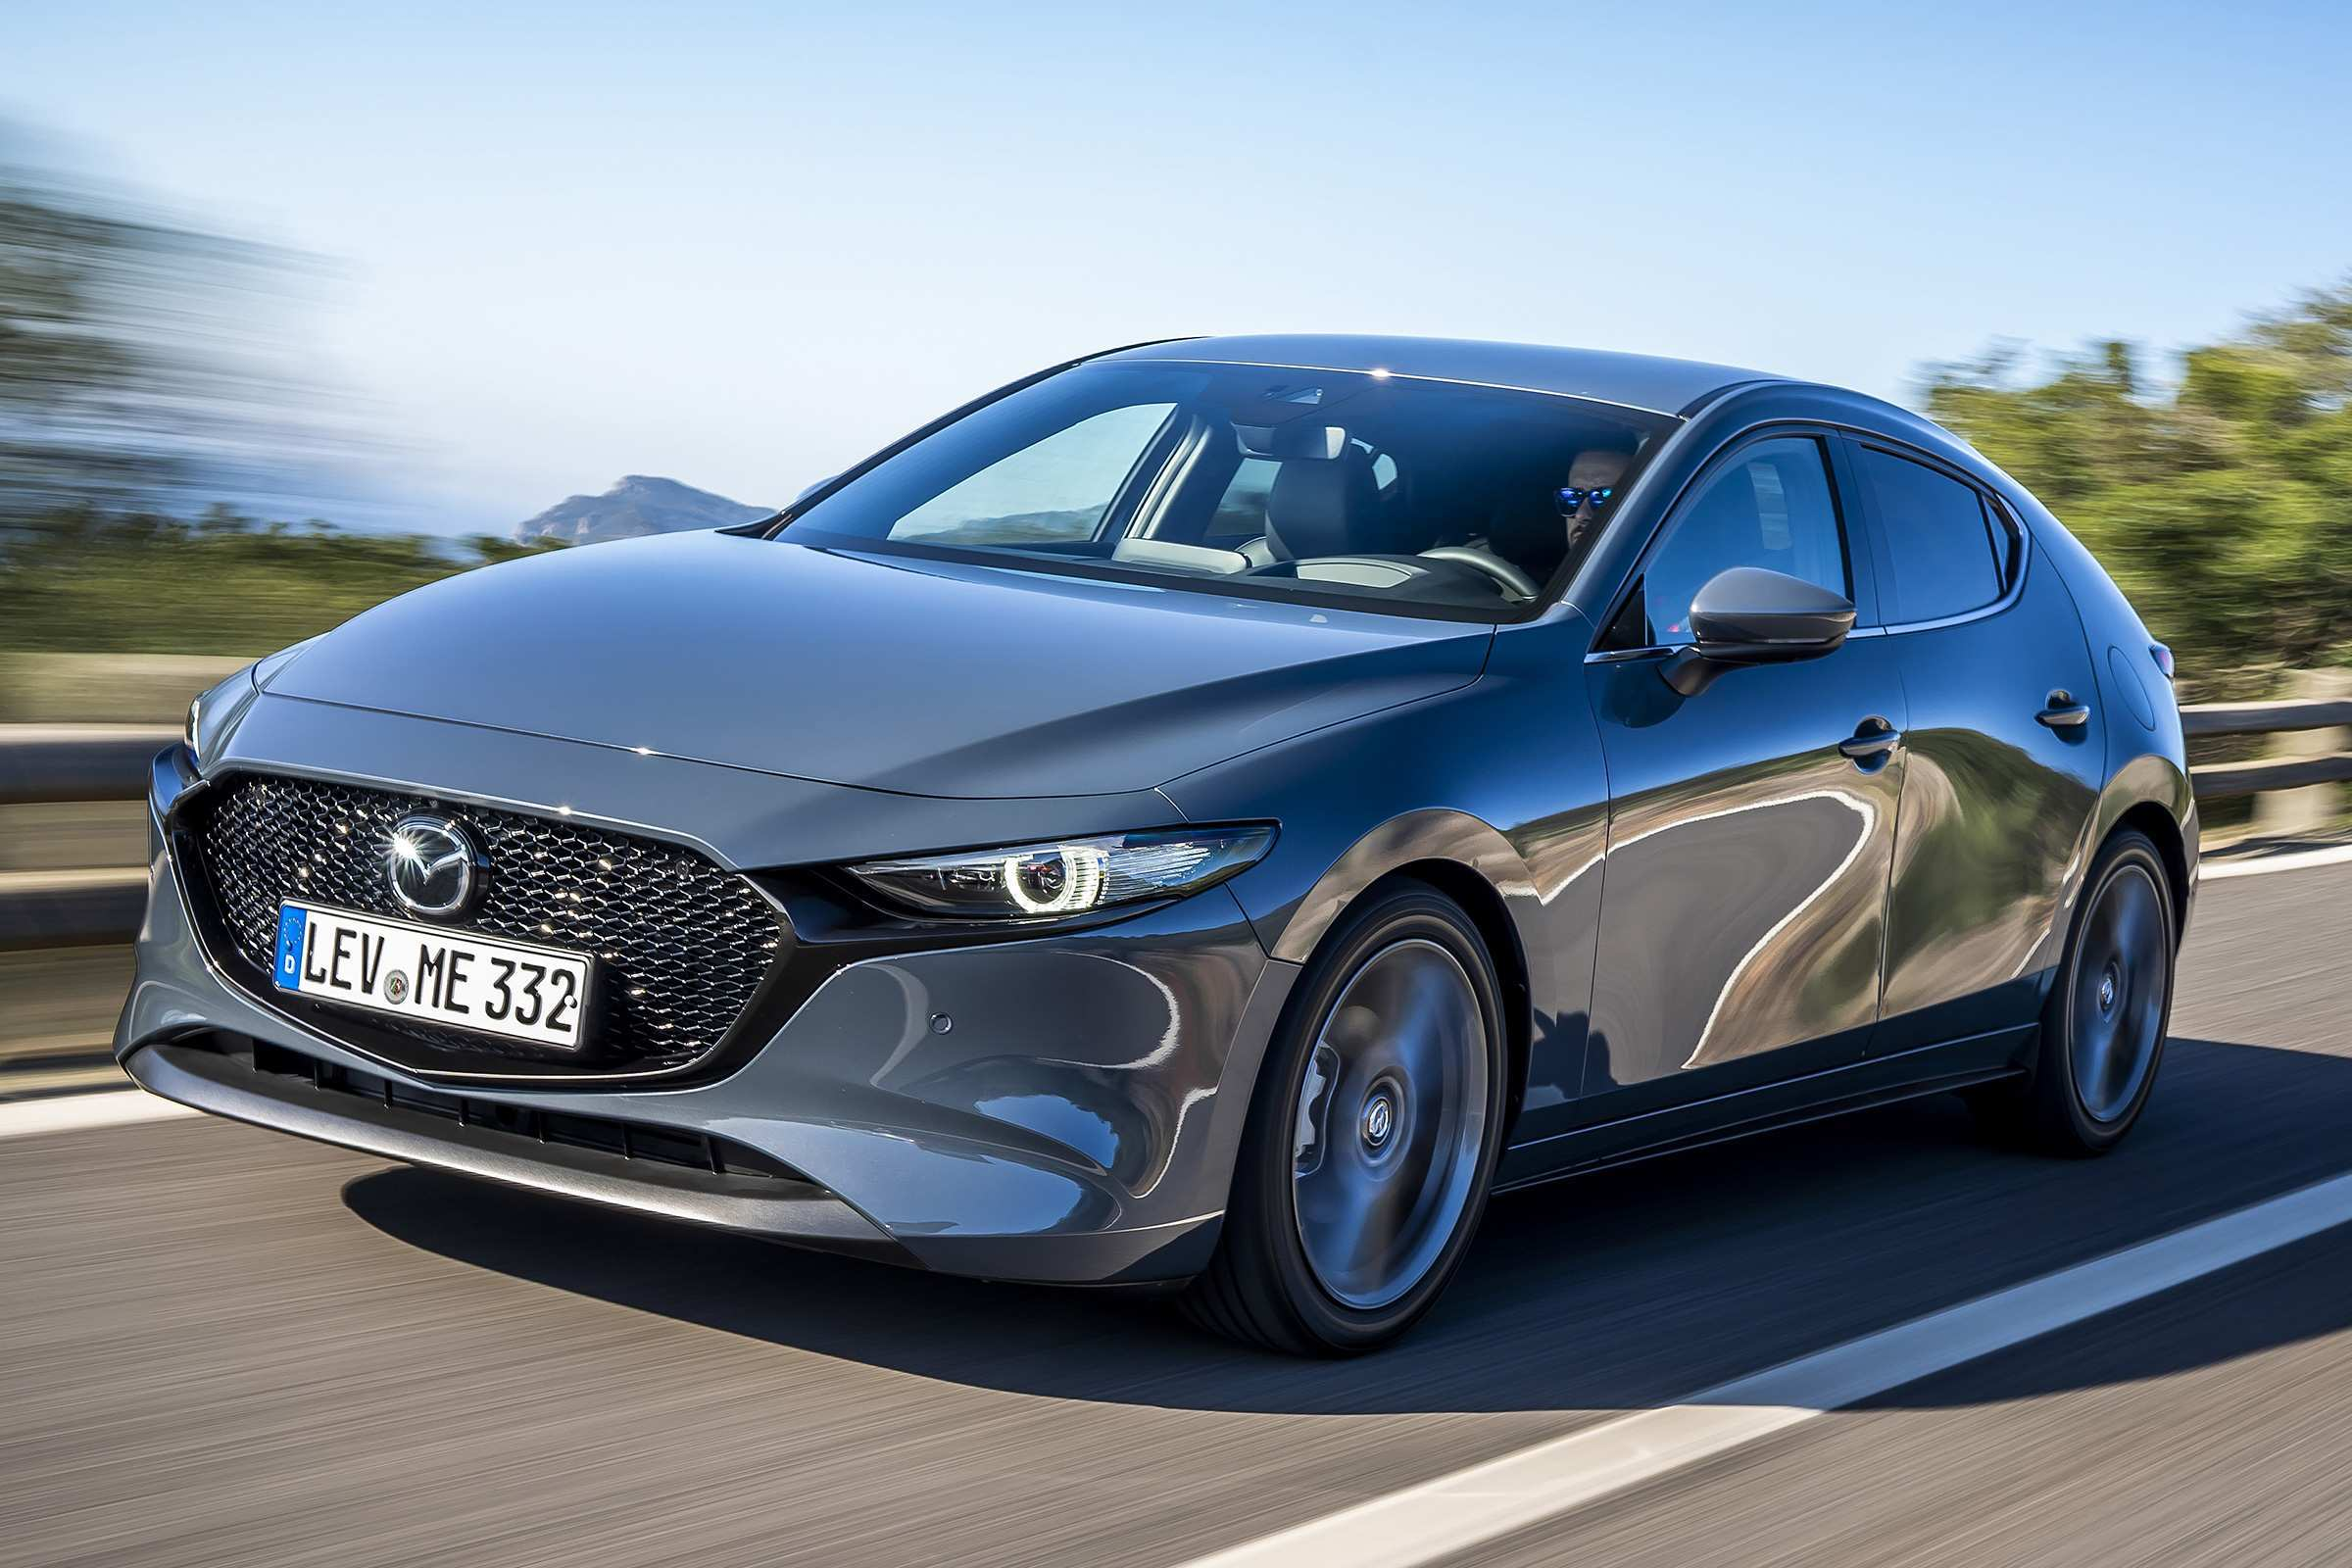 54 Great New Mazda Jeep 2019 New Review Exterior and Interior with New Mazda Jeep 2019 New Review